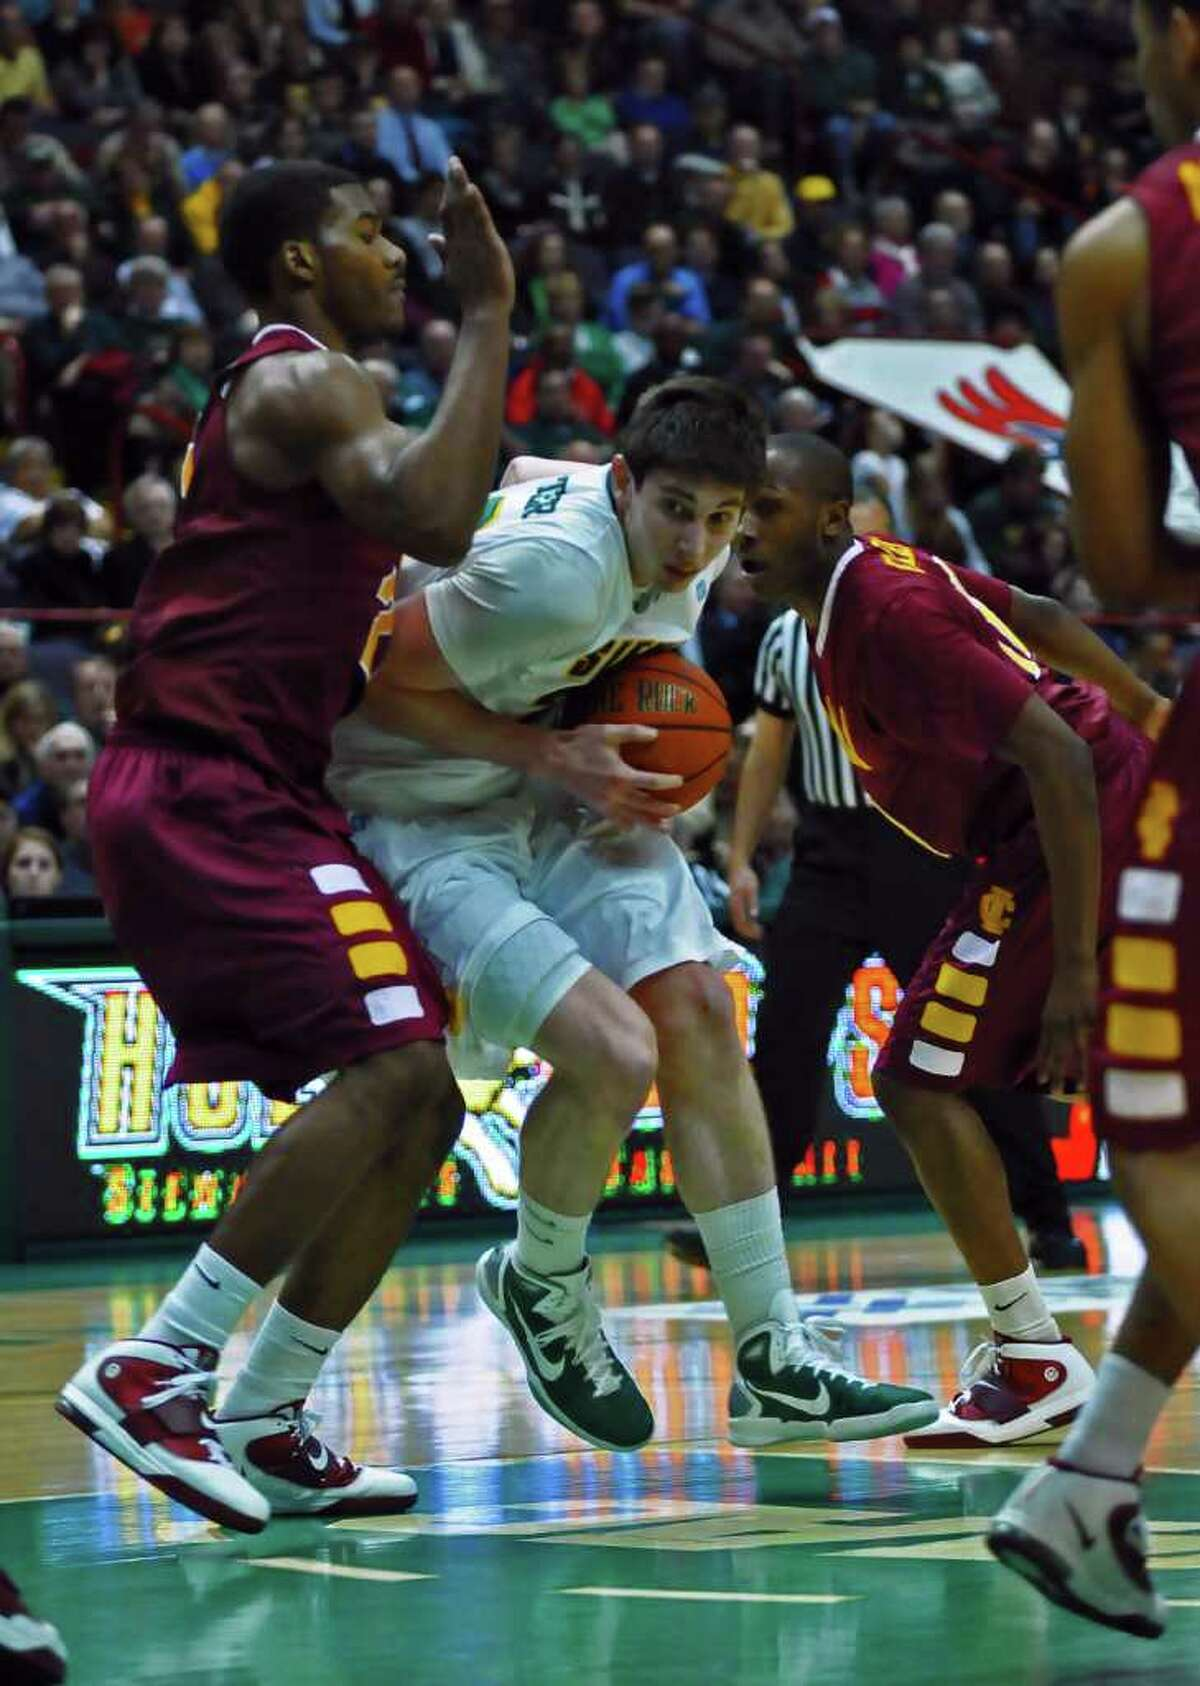 Siena's Ryan Rossiter drives to the basket during Siena's 73-67 victory over Iona at the Times Union Center in Albany, NY on Monday night January 3, 2011. ( Philip Kamrass / Times Union )